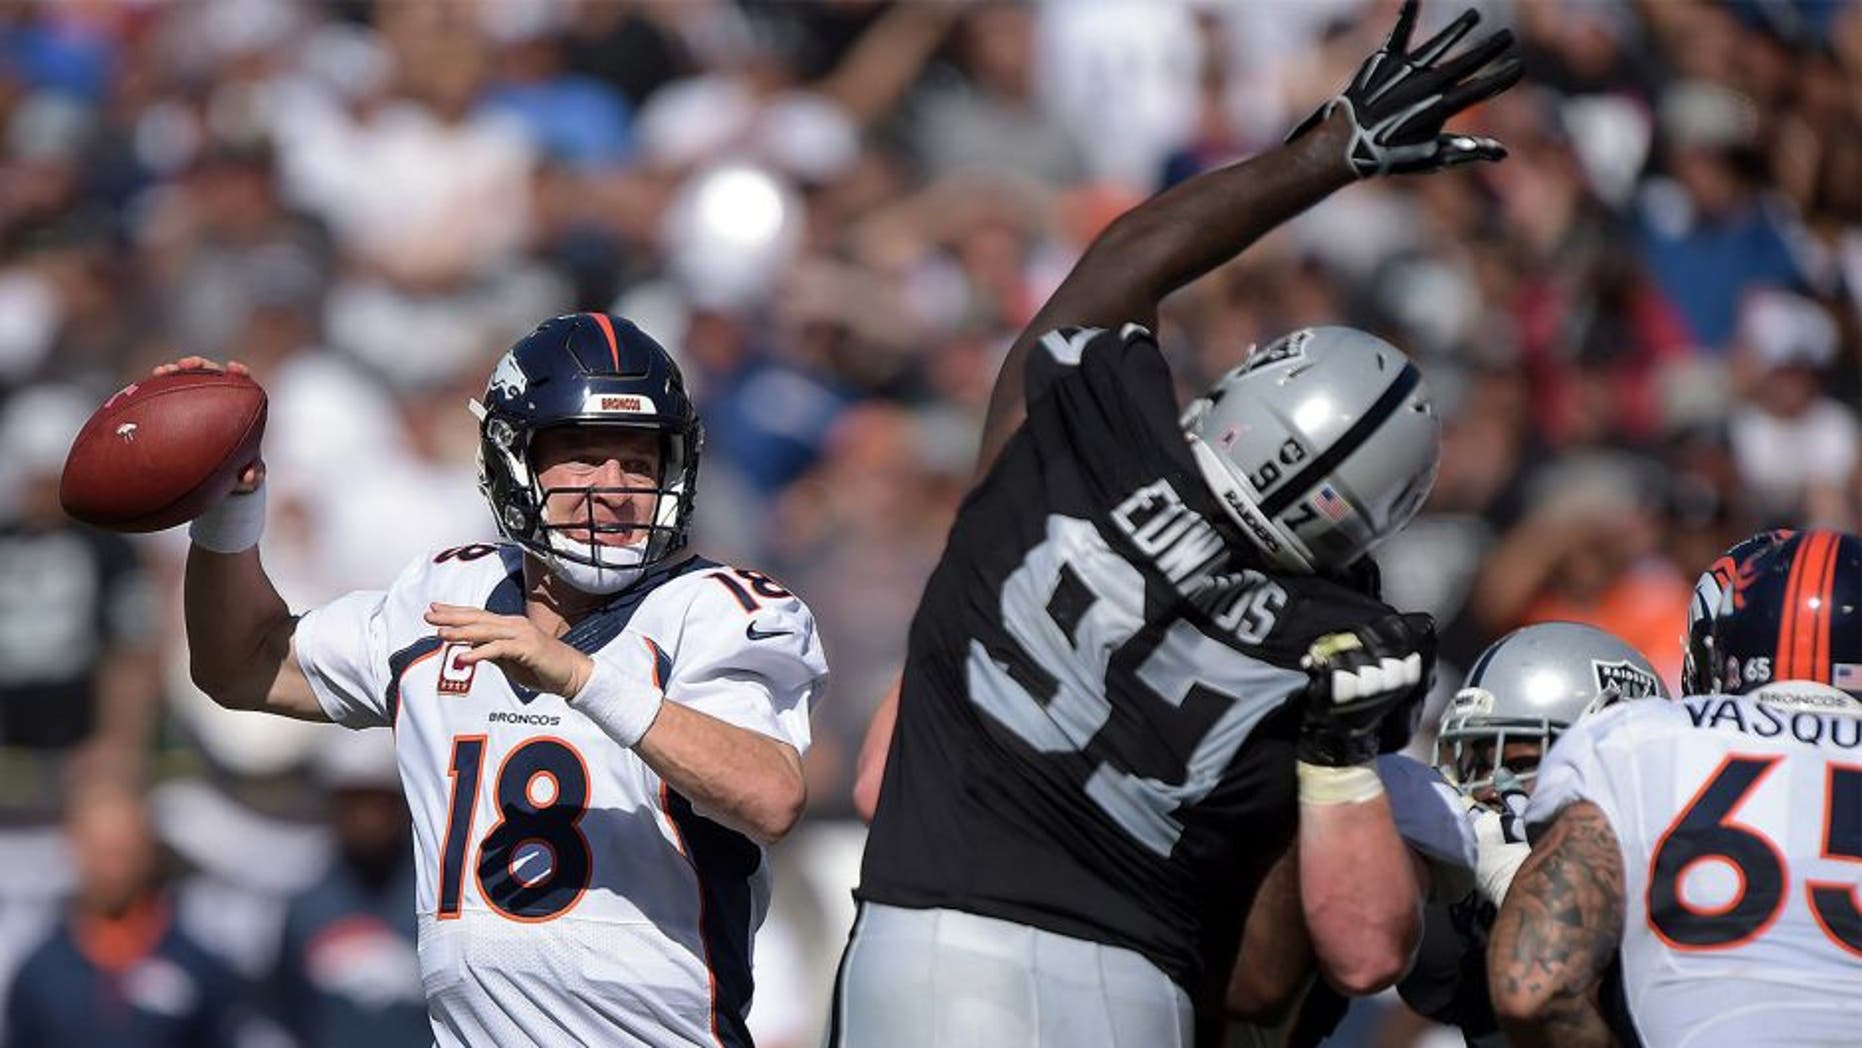 Oct 11, 2015; Oakland, CA, USA; Denver Broncos quarterback Peyton Manning (18) throws a pass under pressure by Oakland Raiders defensive end Mario Edwards Jr. (97) at O.co Coliseum. Mandatory Credit: Kirby Lee-USA TODAY Sports